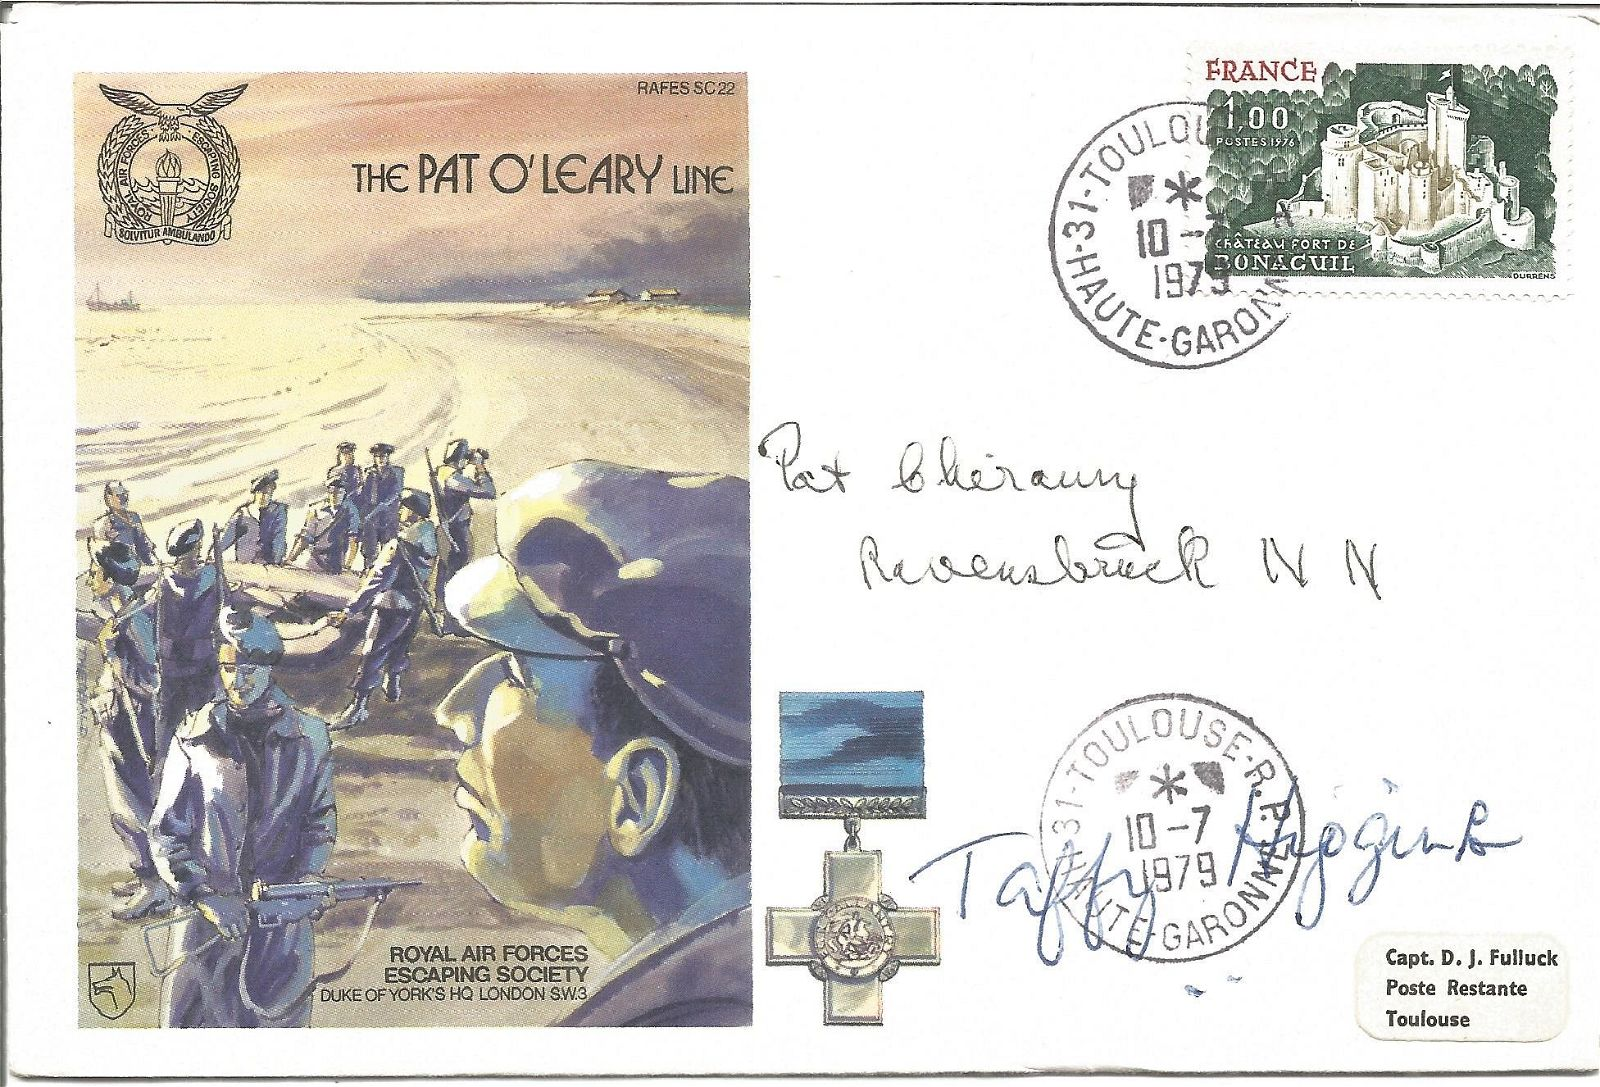 The Pat O'Leary Line signed RAF cover No 166 of 1060.